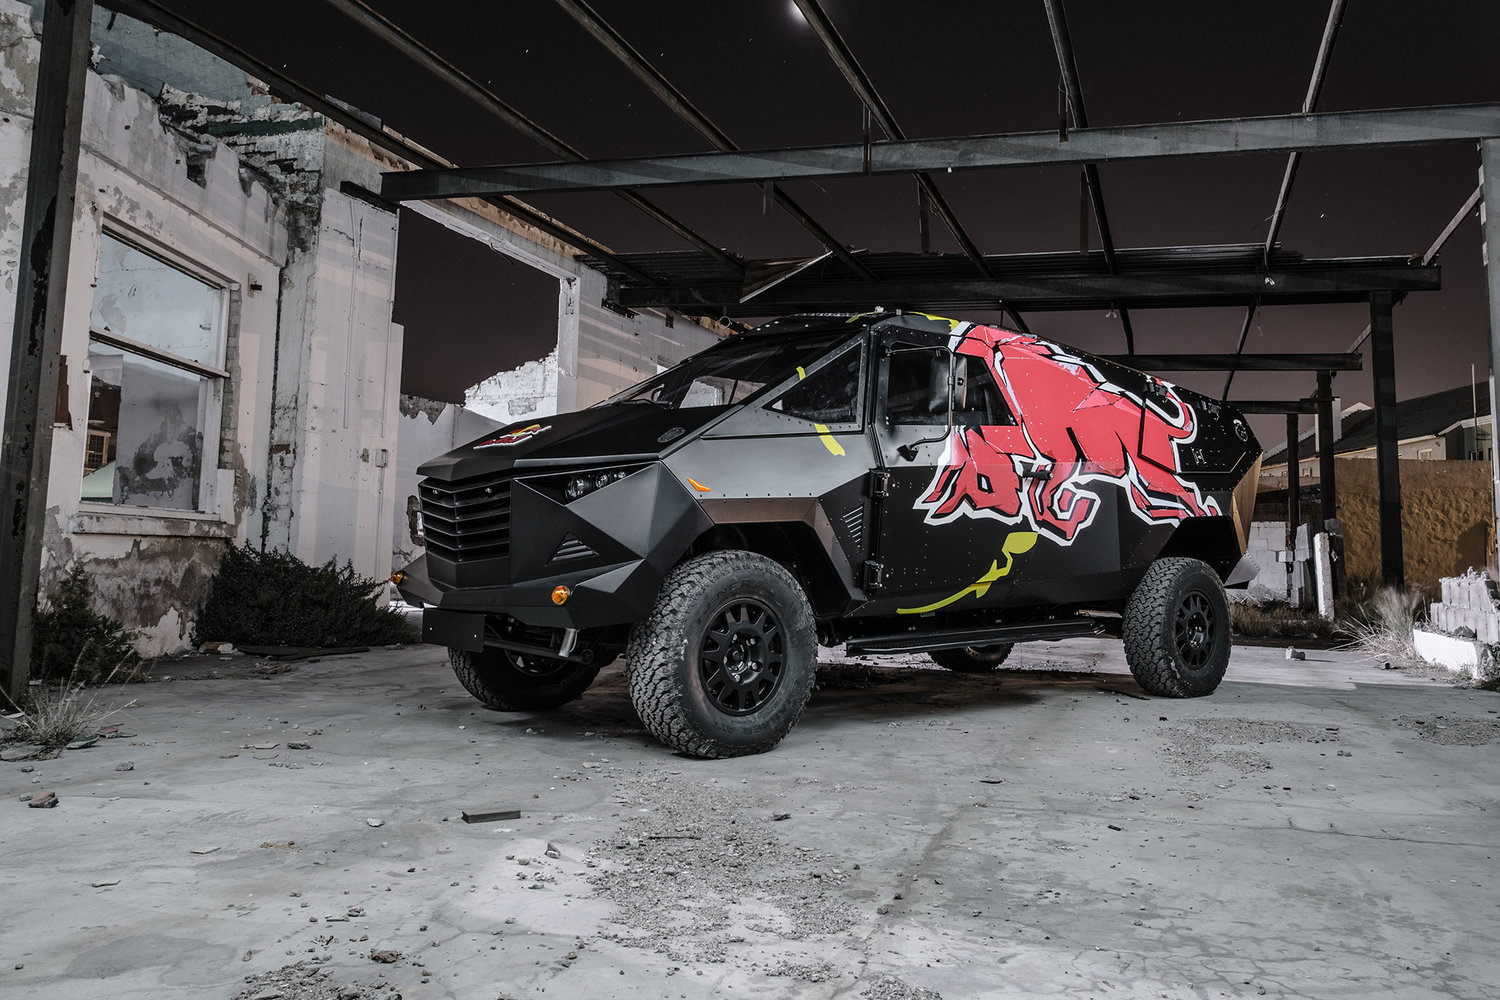 red bull reveals armored event vehicle with stealthy look land rover defender chassis. Black Bedroom Furniture Sets. Home Design Ideas